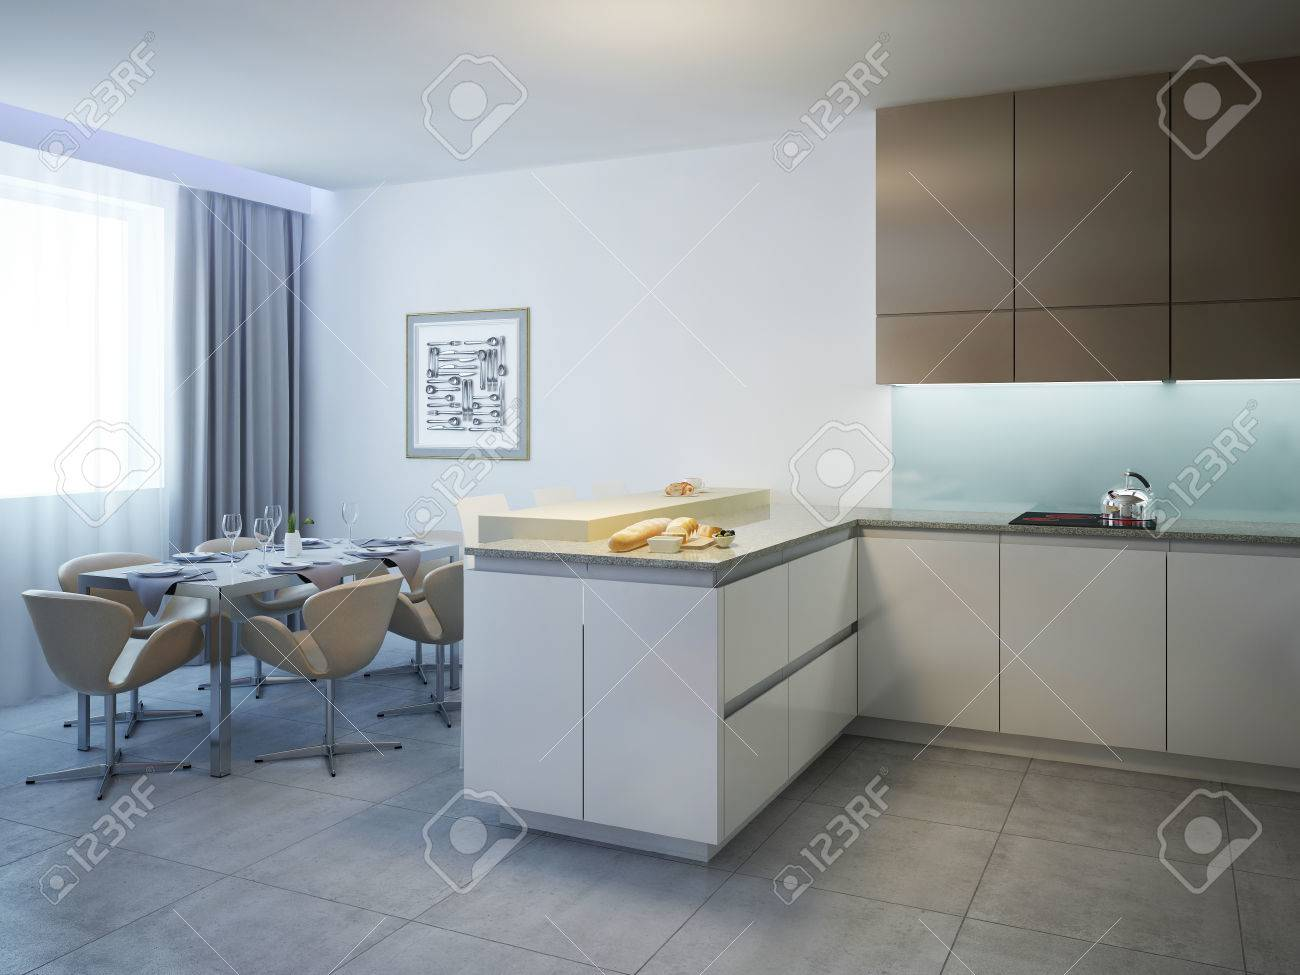 Full Size of Kitchen With Dining Table Contemporary Style Küche Küche Mit Theke